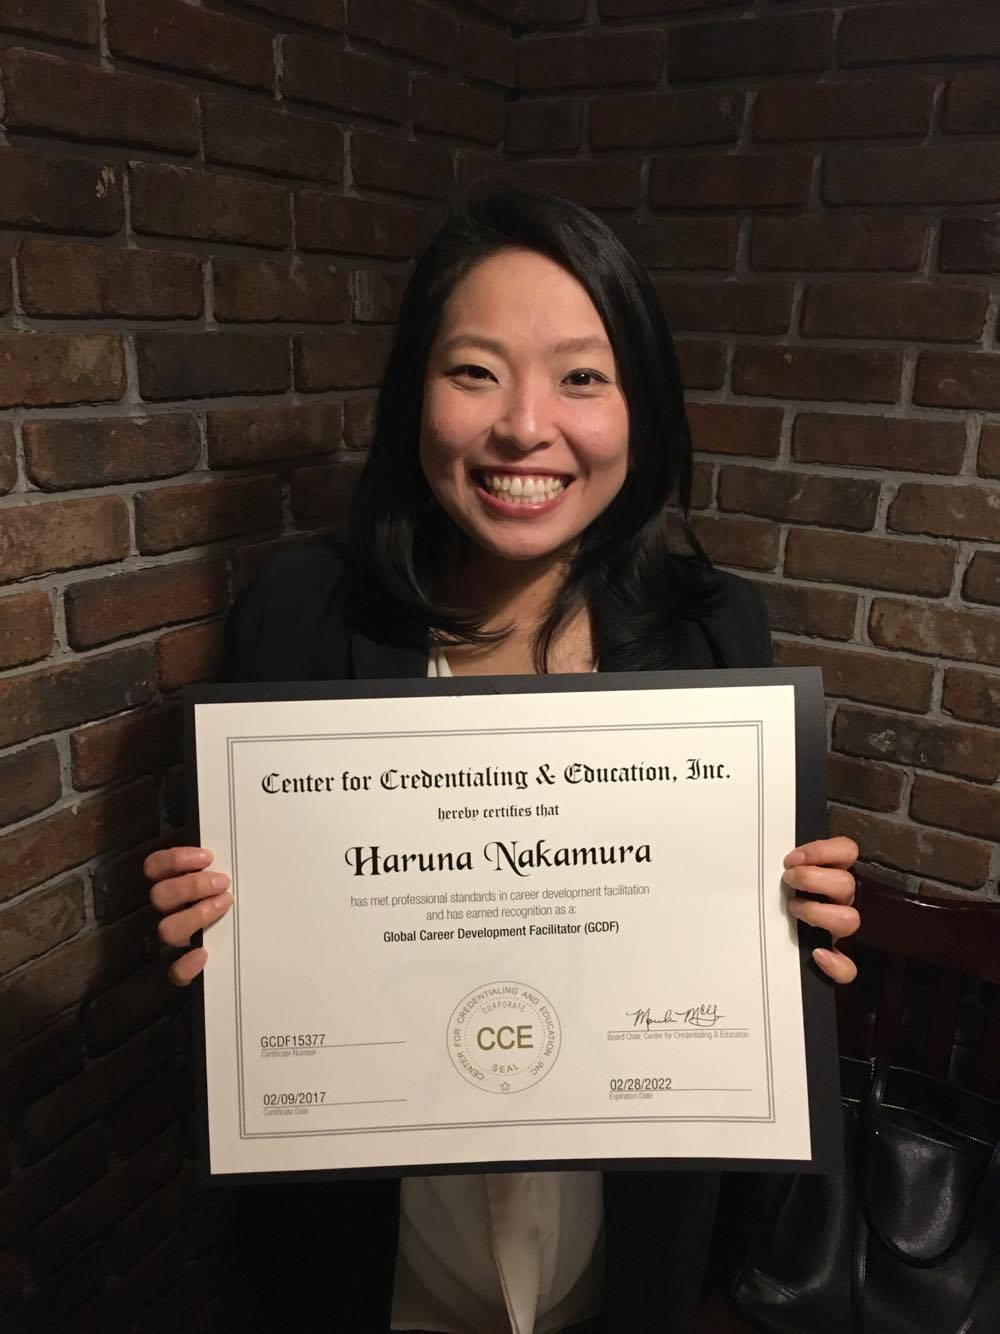 Our Manager Haruna Nakamura is now certified as Global Career Development Facilitator (GCDF). She has worked very hard for this achievement (yes, she is a working mother!). Congrats Haruna!!! We are so proud of you, and thank you for being an awesome member at NYCA!!!